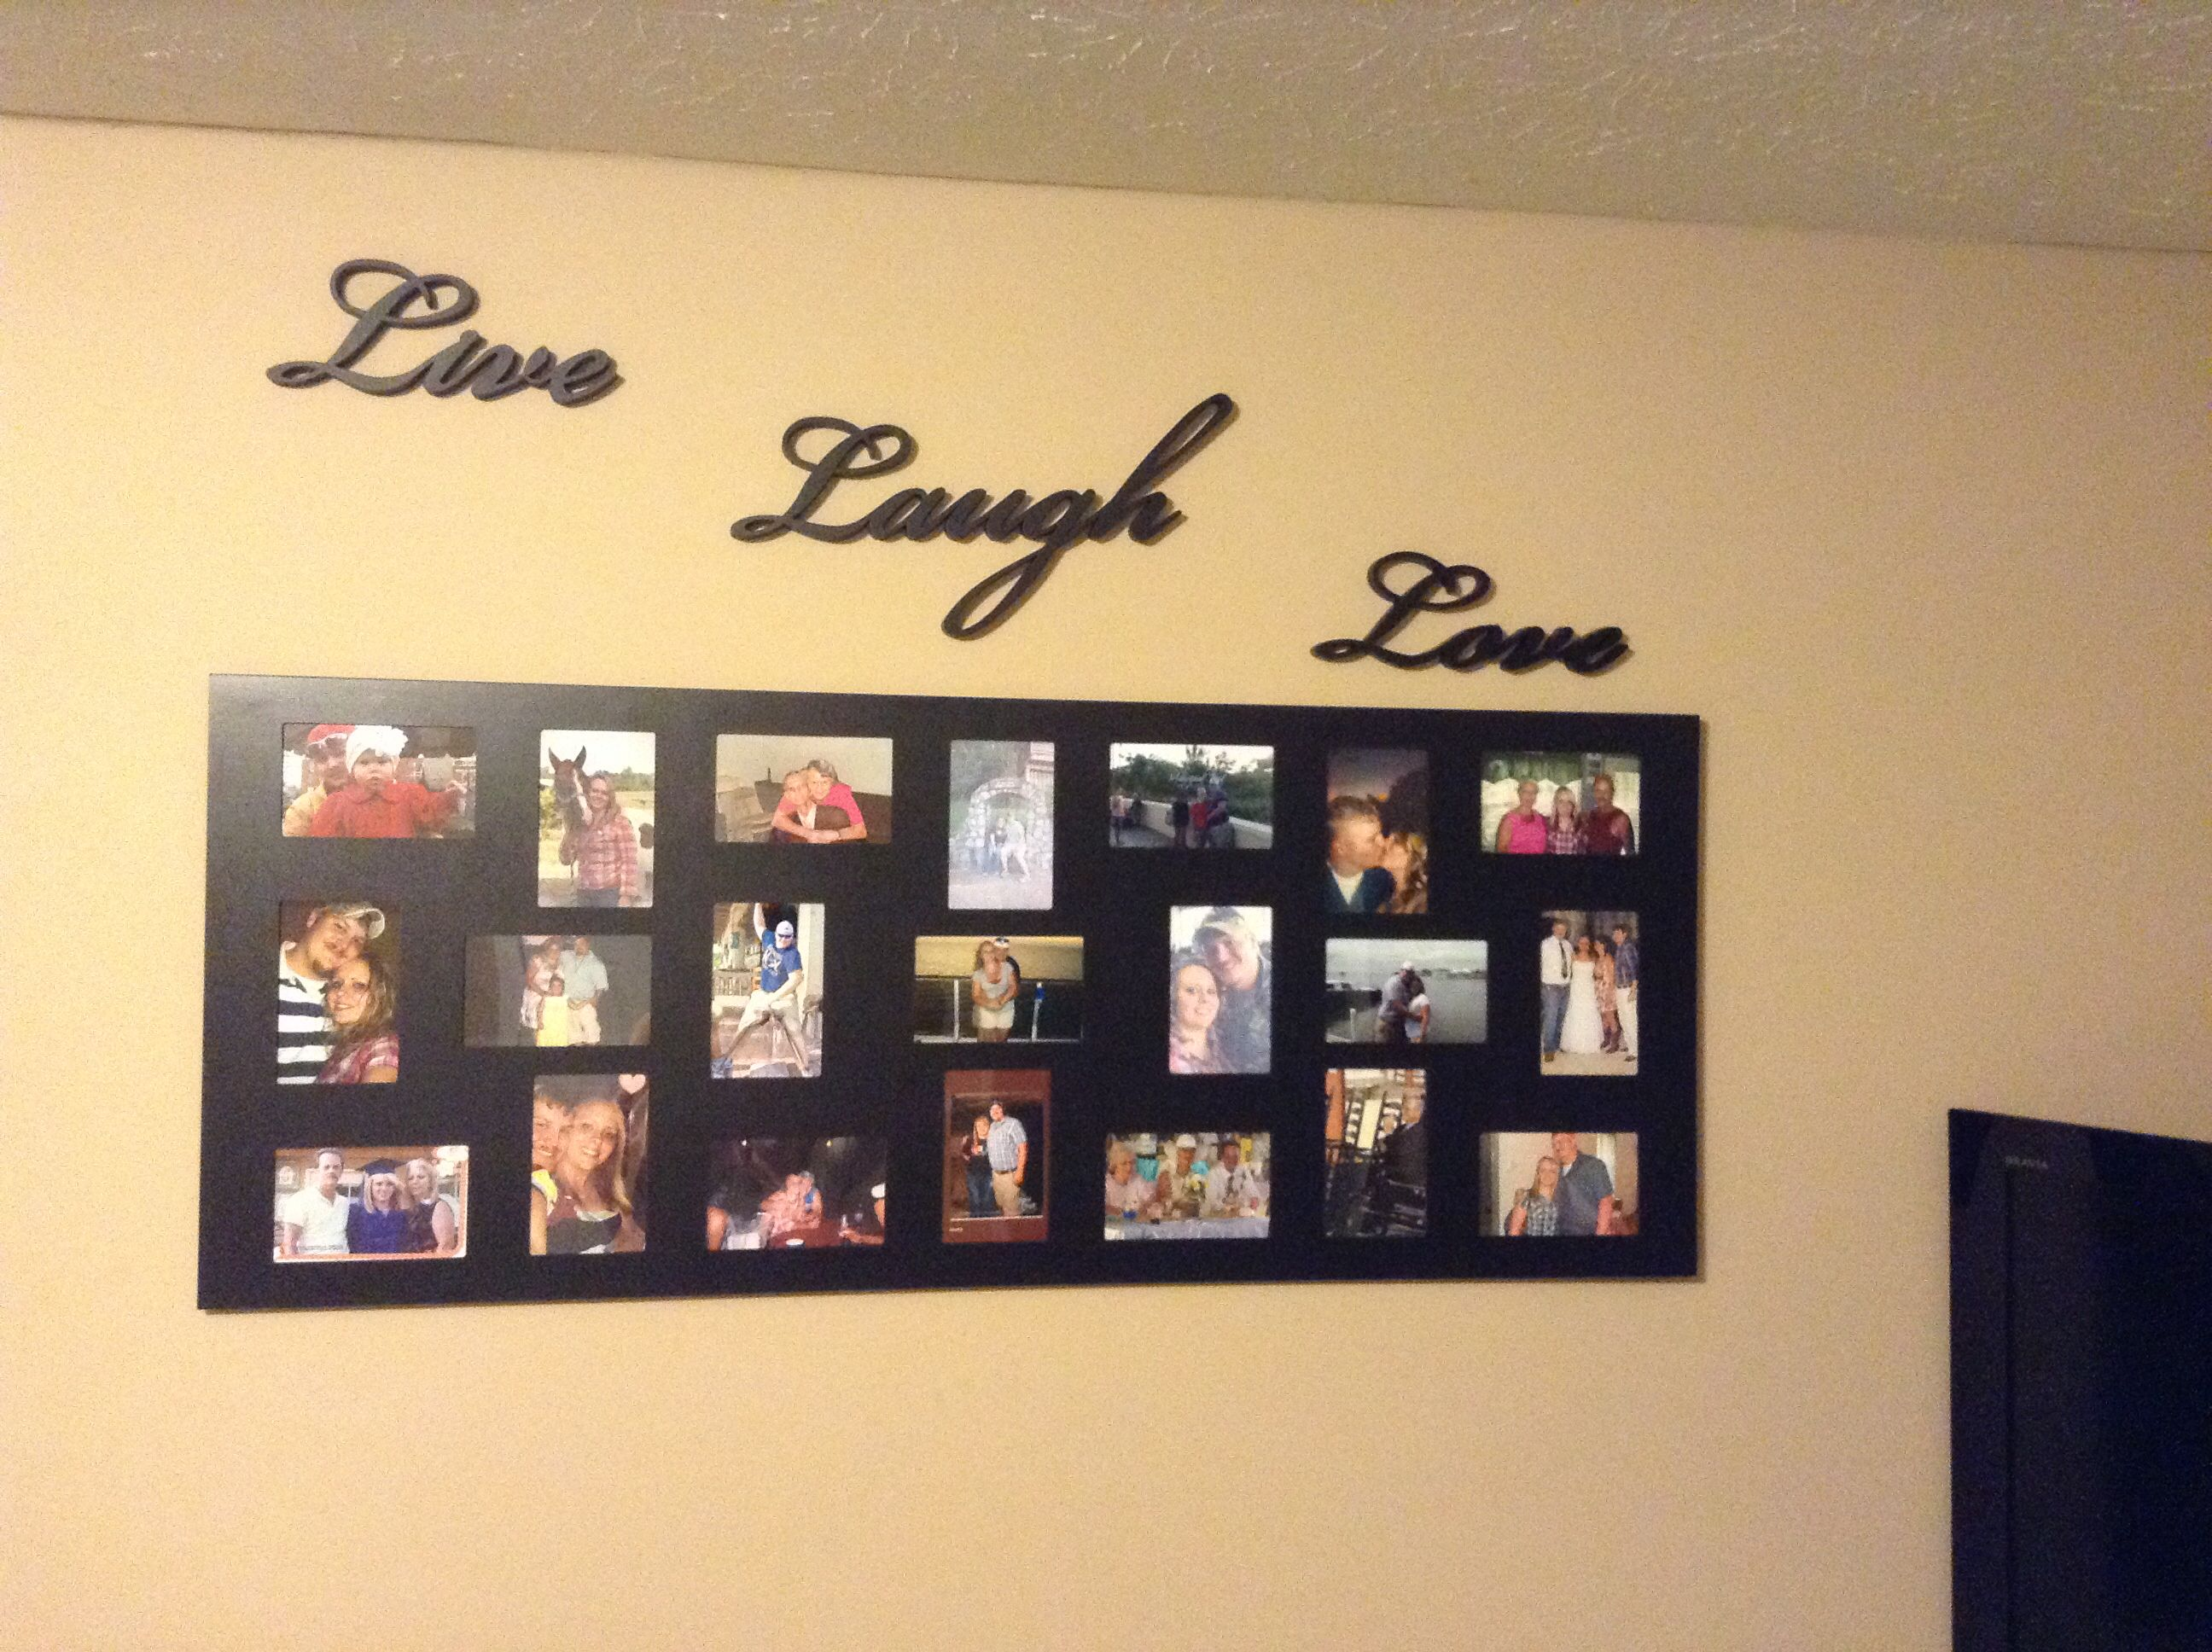 diy photo collage | Home ideas | Pinterest | Bricolaje y Collages